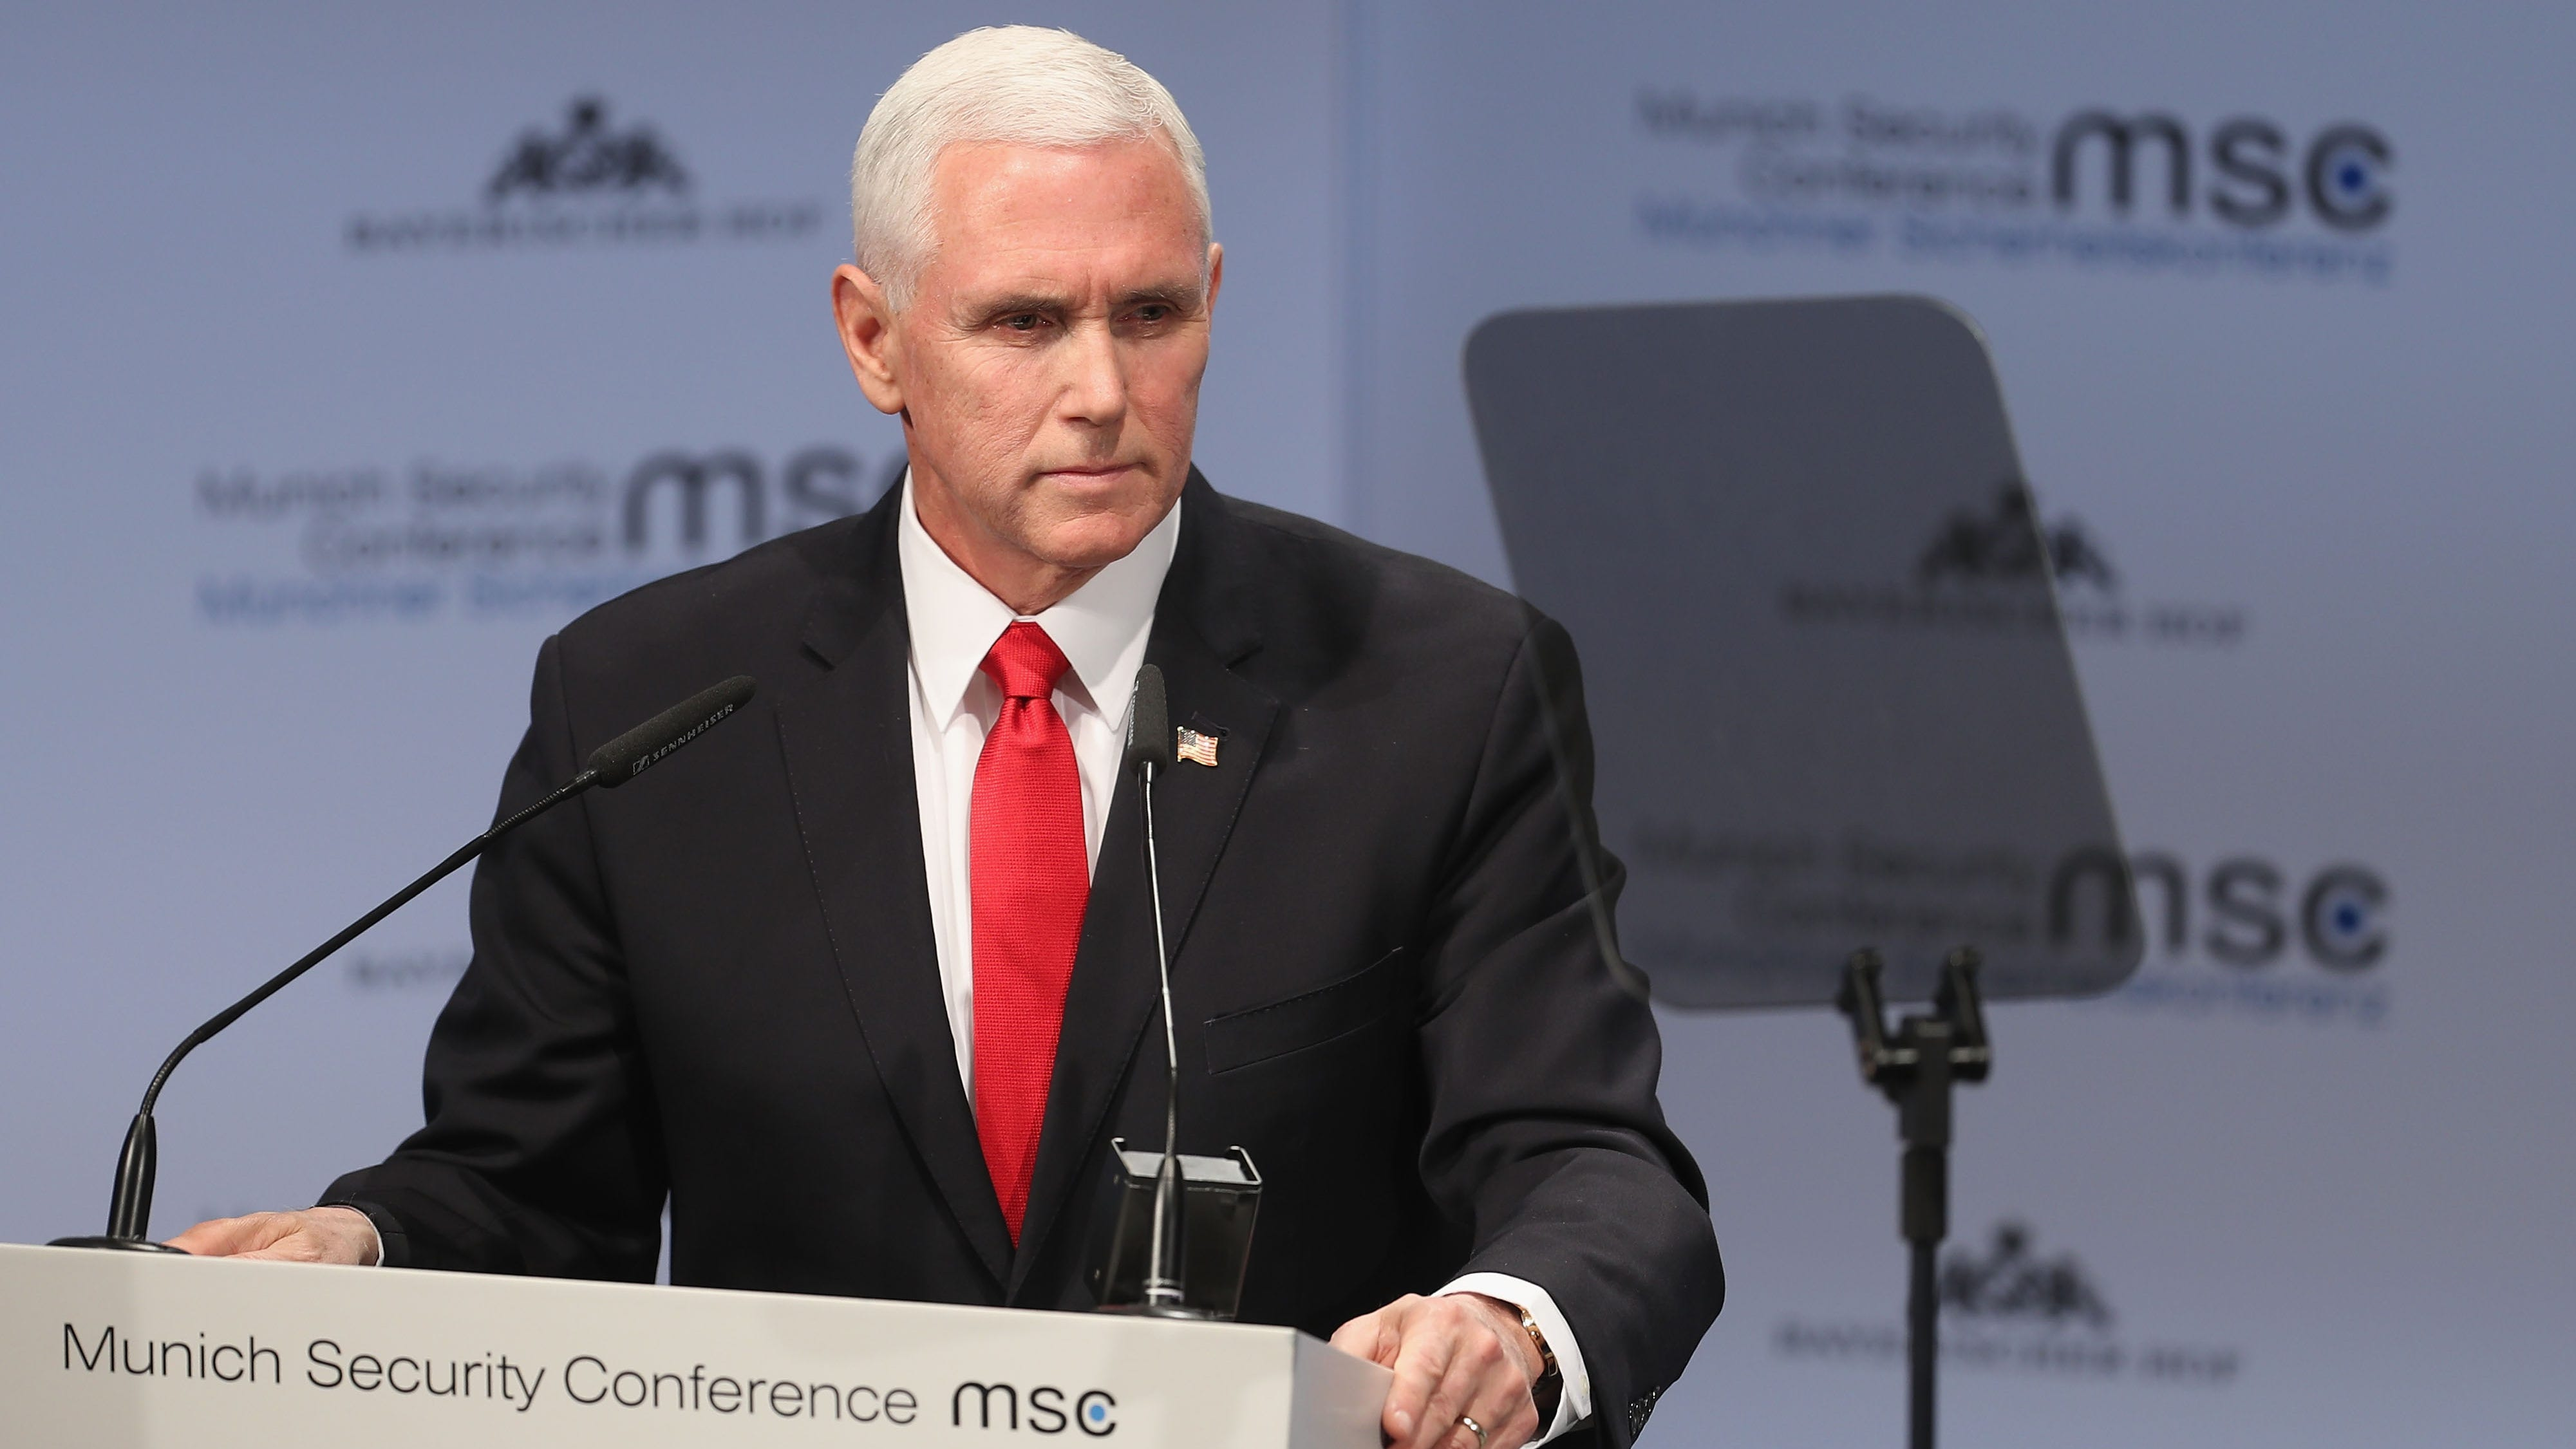 Vice President Michael Pence gives a speech during the 55th Munich Security Conference on Feb. 16, 2019, in Munich, Germany.